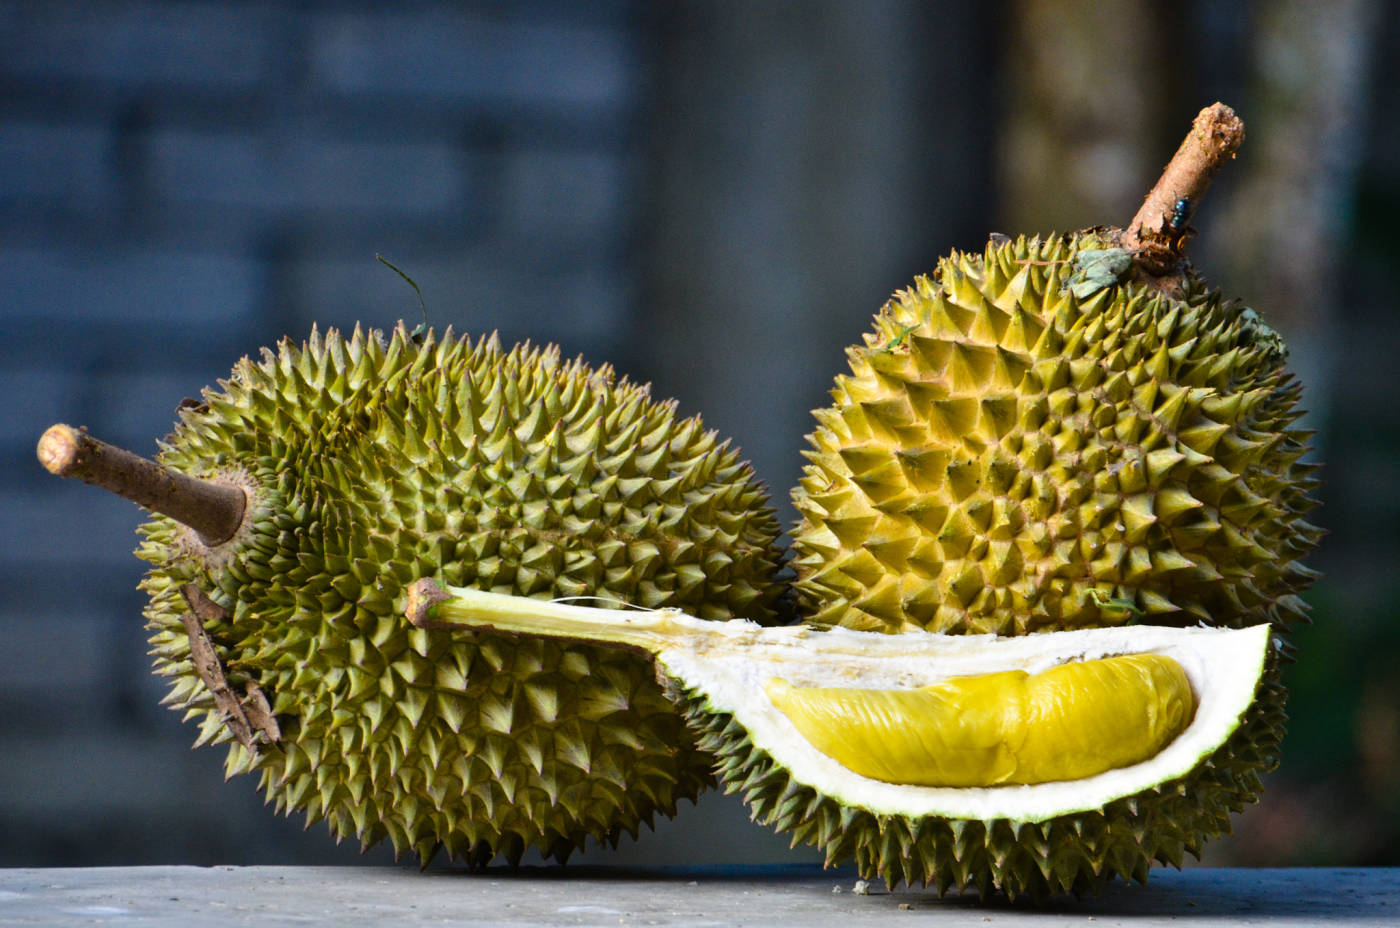 Global durian fruit market to hit $28.6 billion by 2025